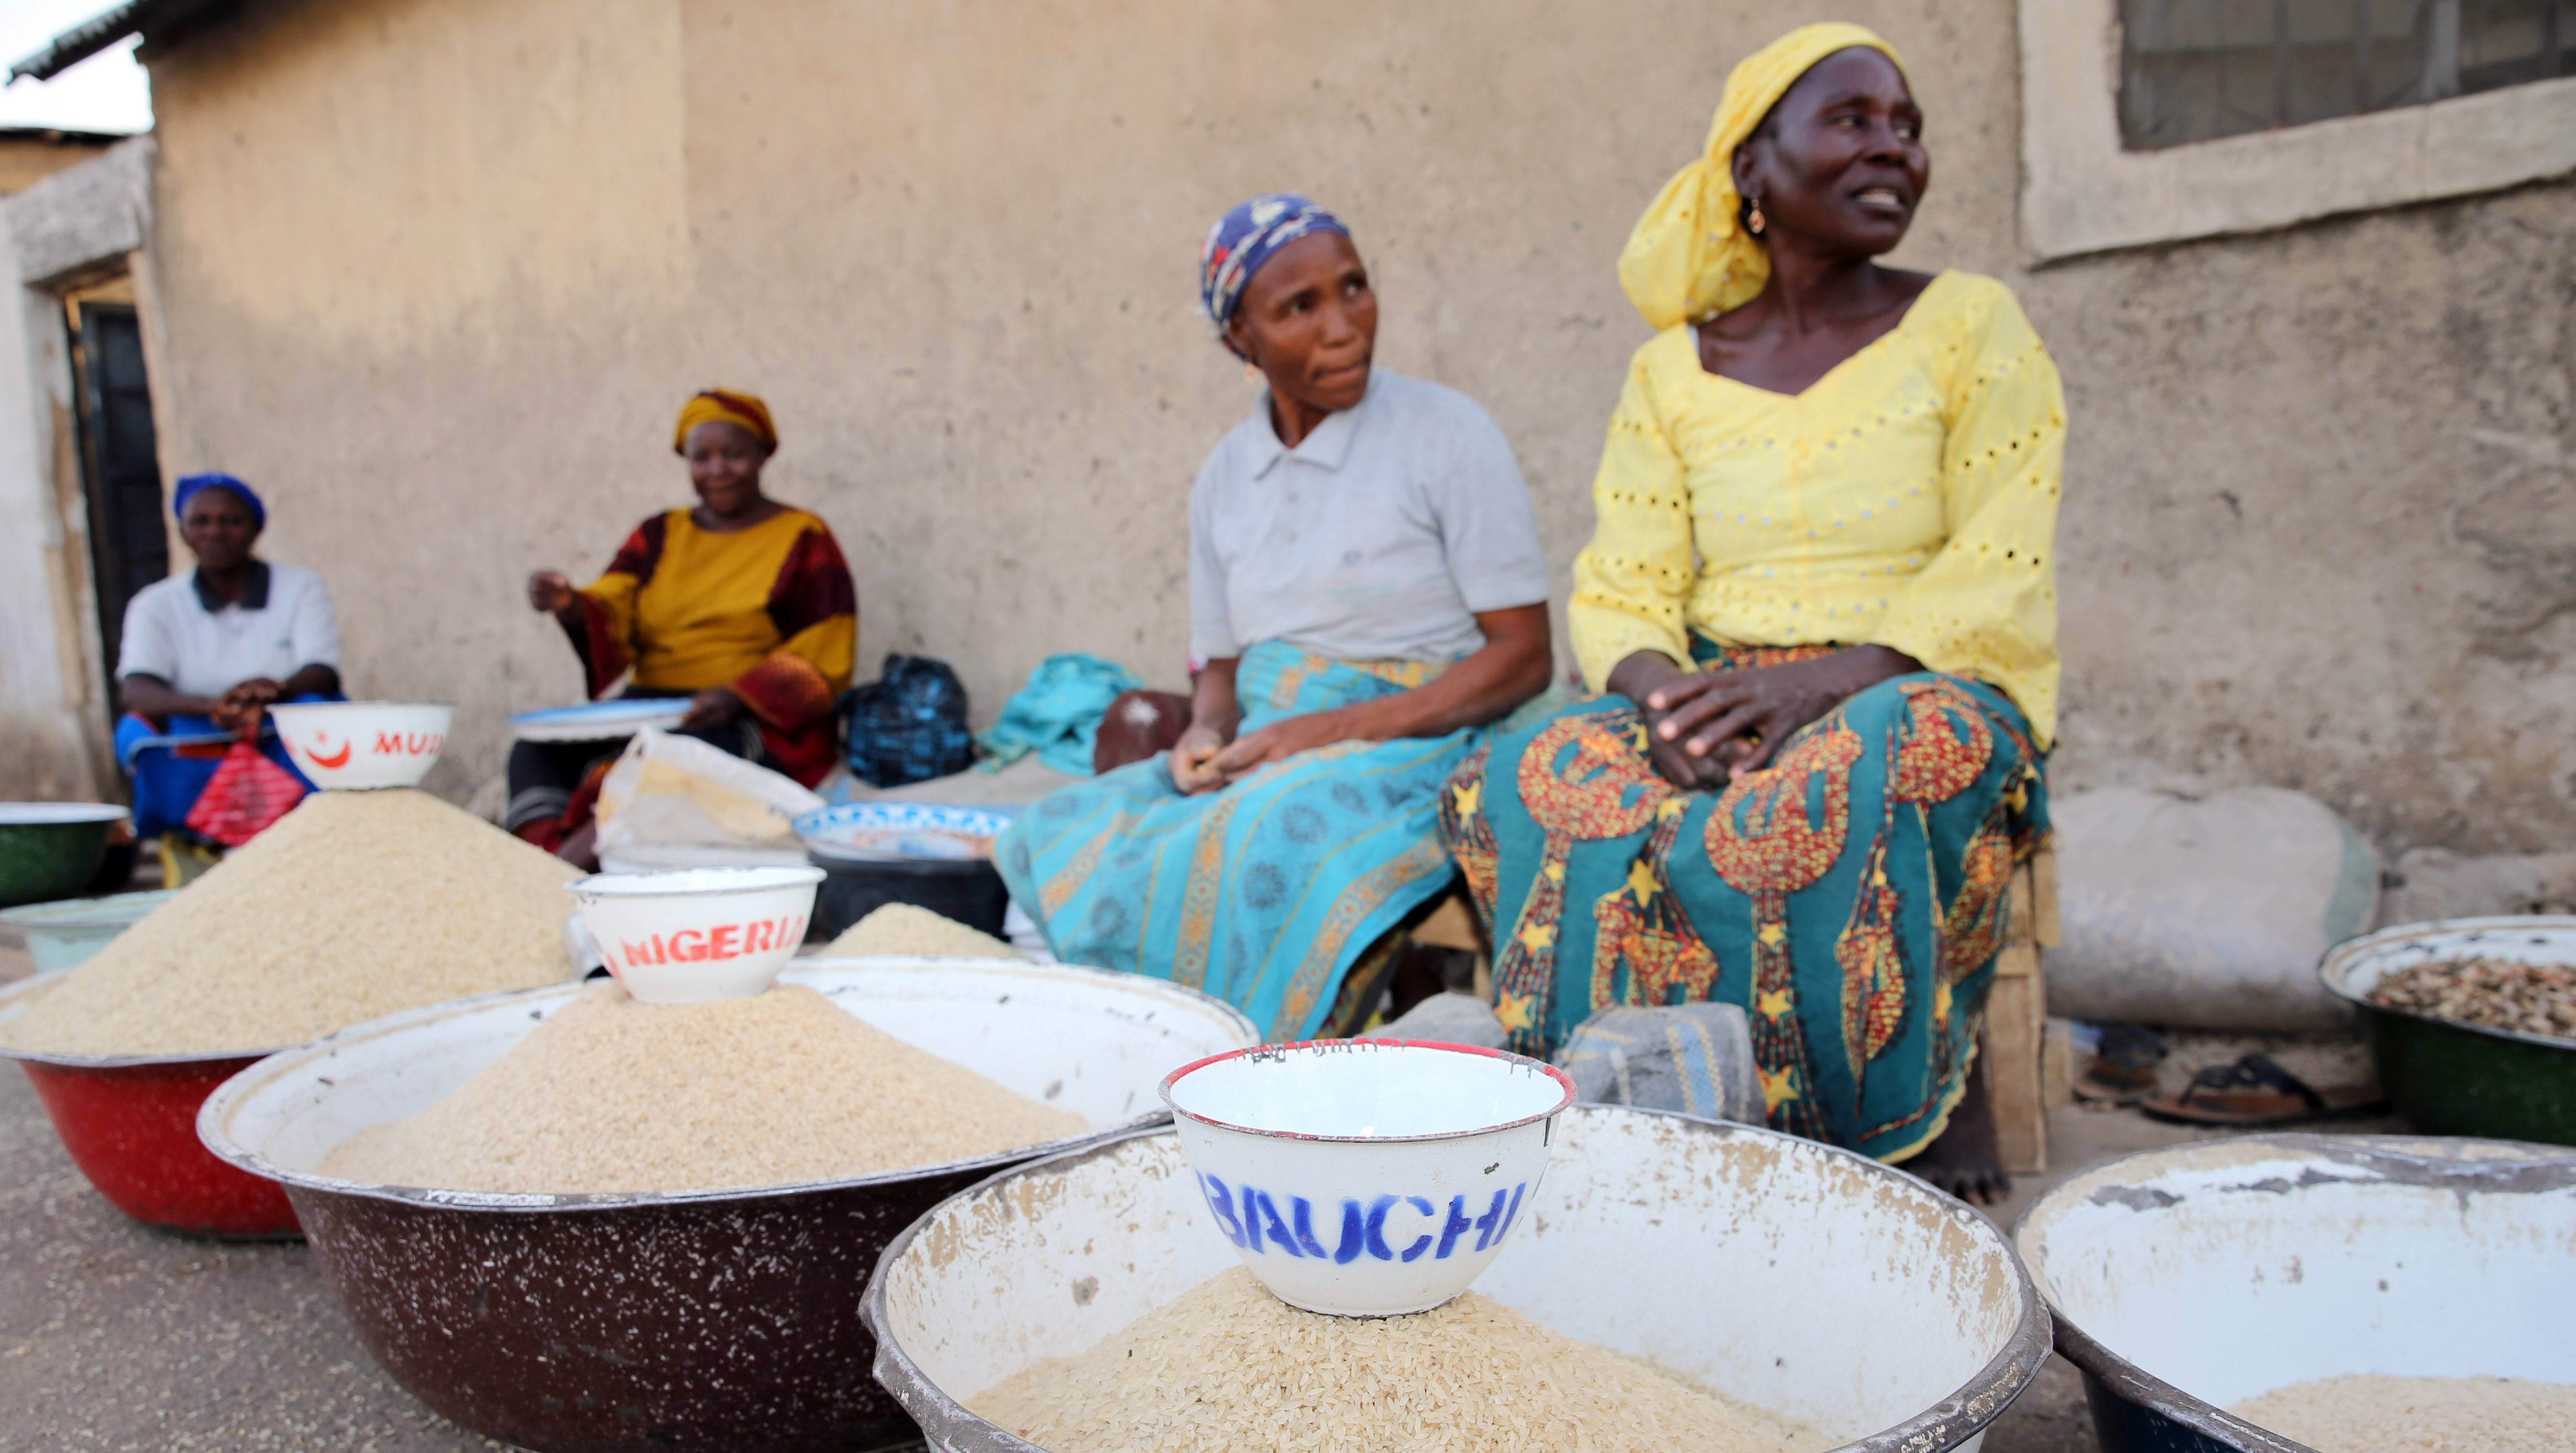 Women selling rice are seen at a local market in Bauchi, Nigeria March 2, 2017. Picture taken March 2, 2017.